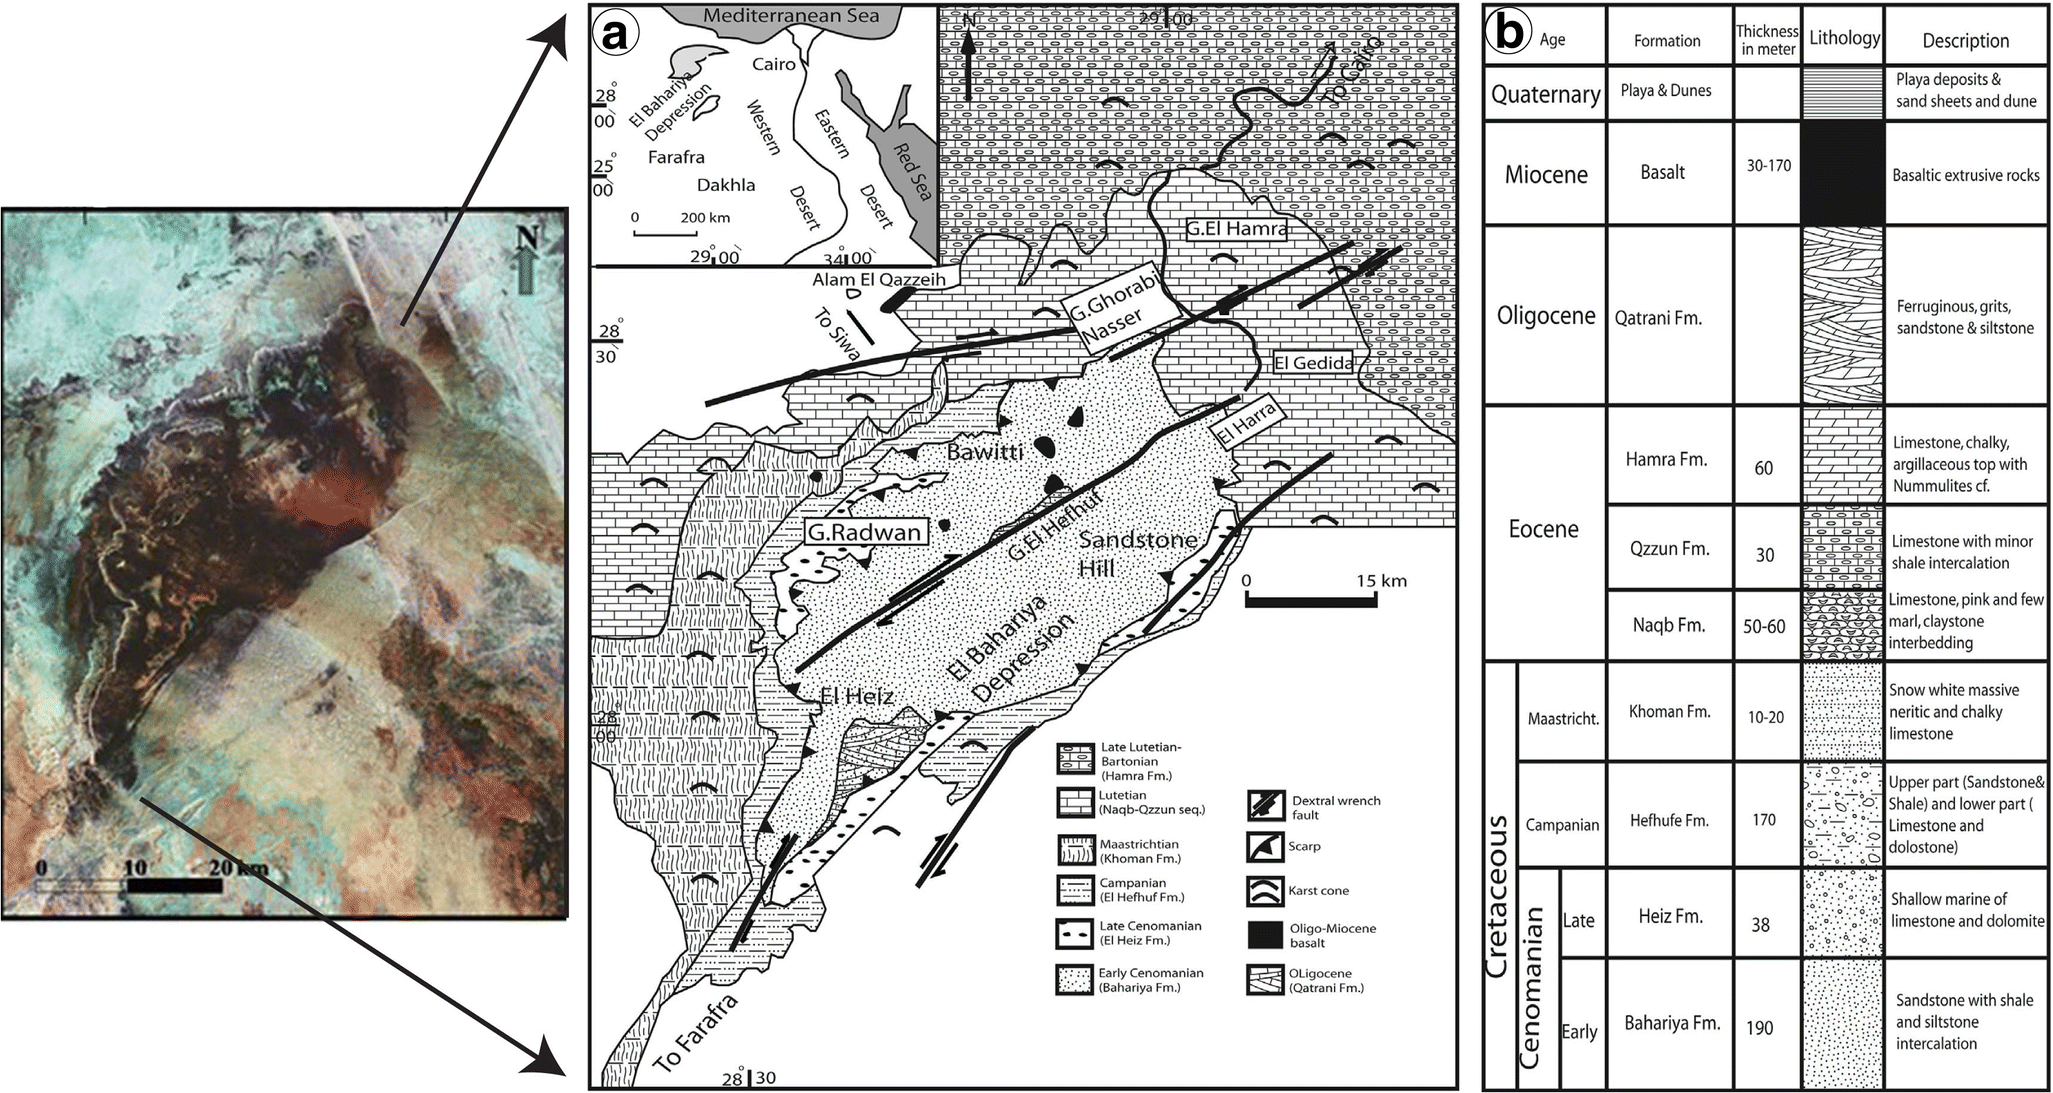 Volcanic Geosites and Their Geoheritage Values Preserved in